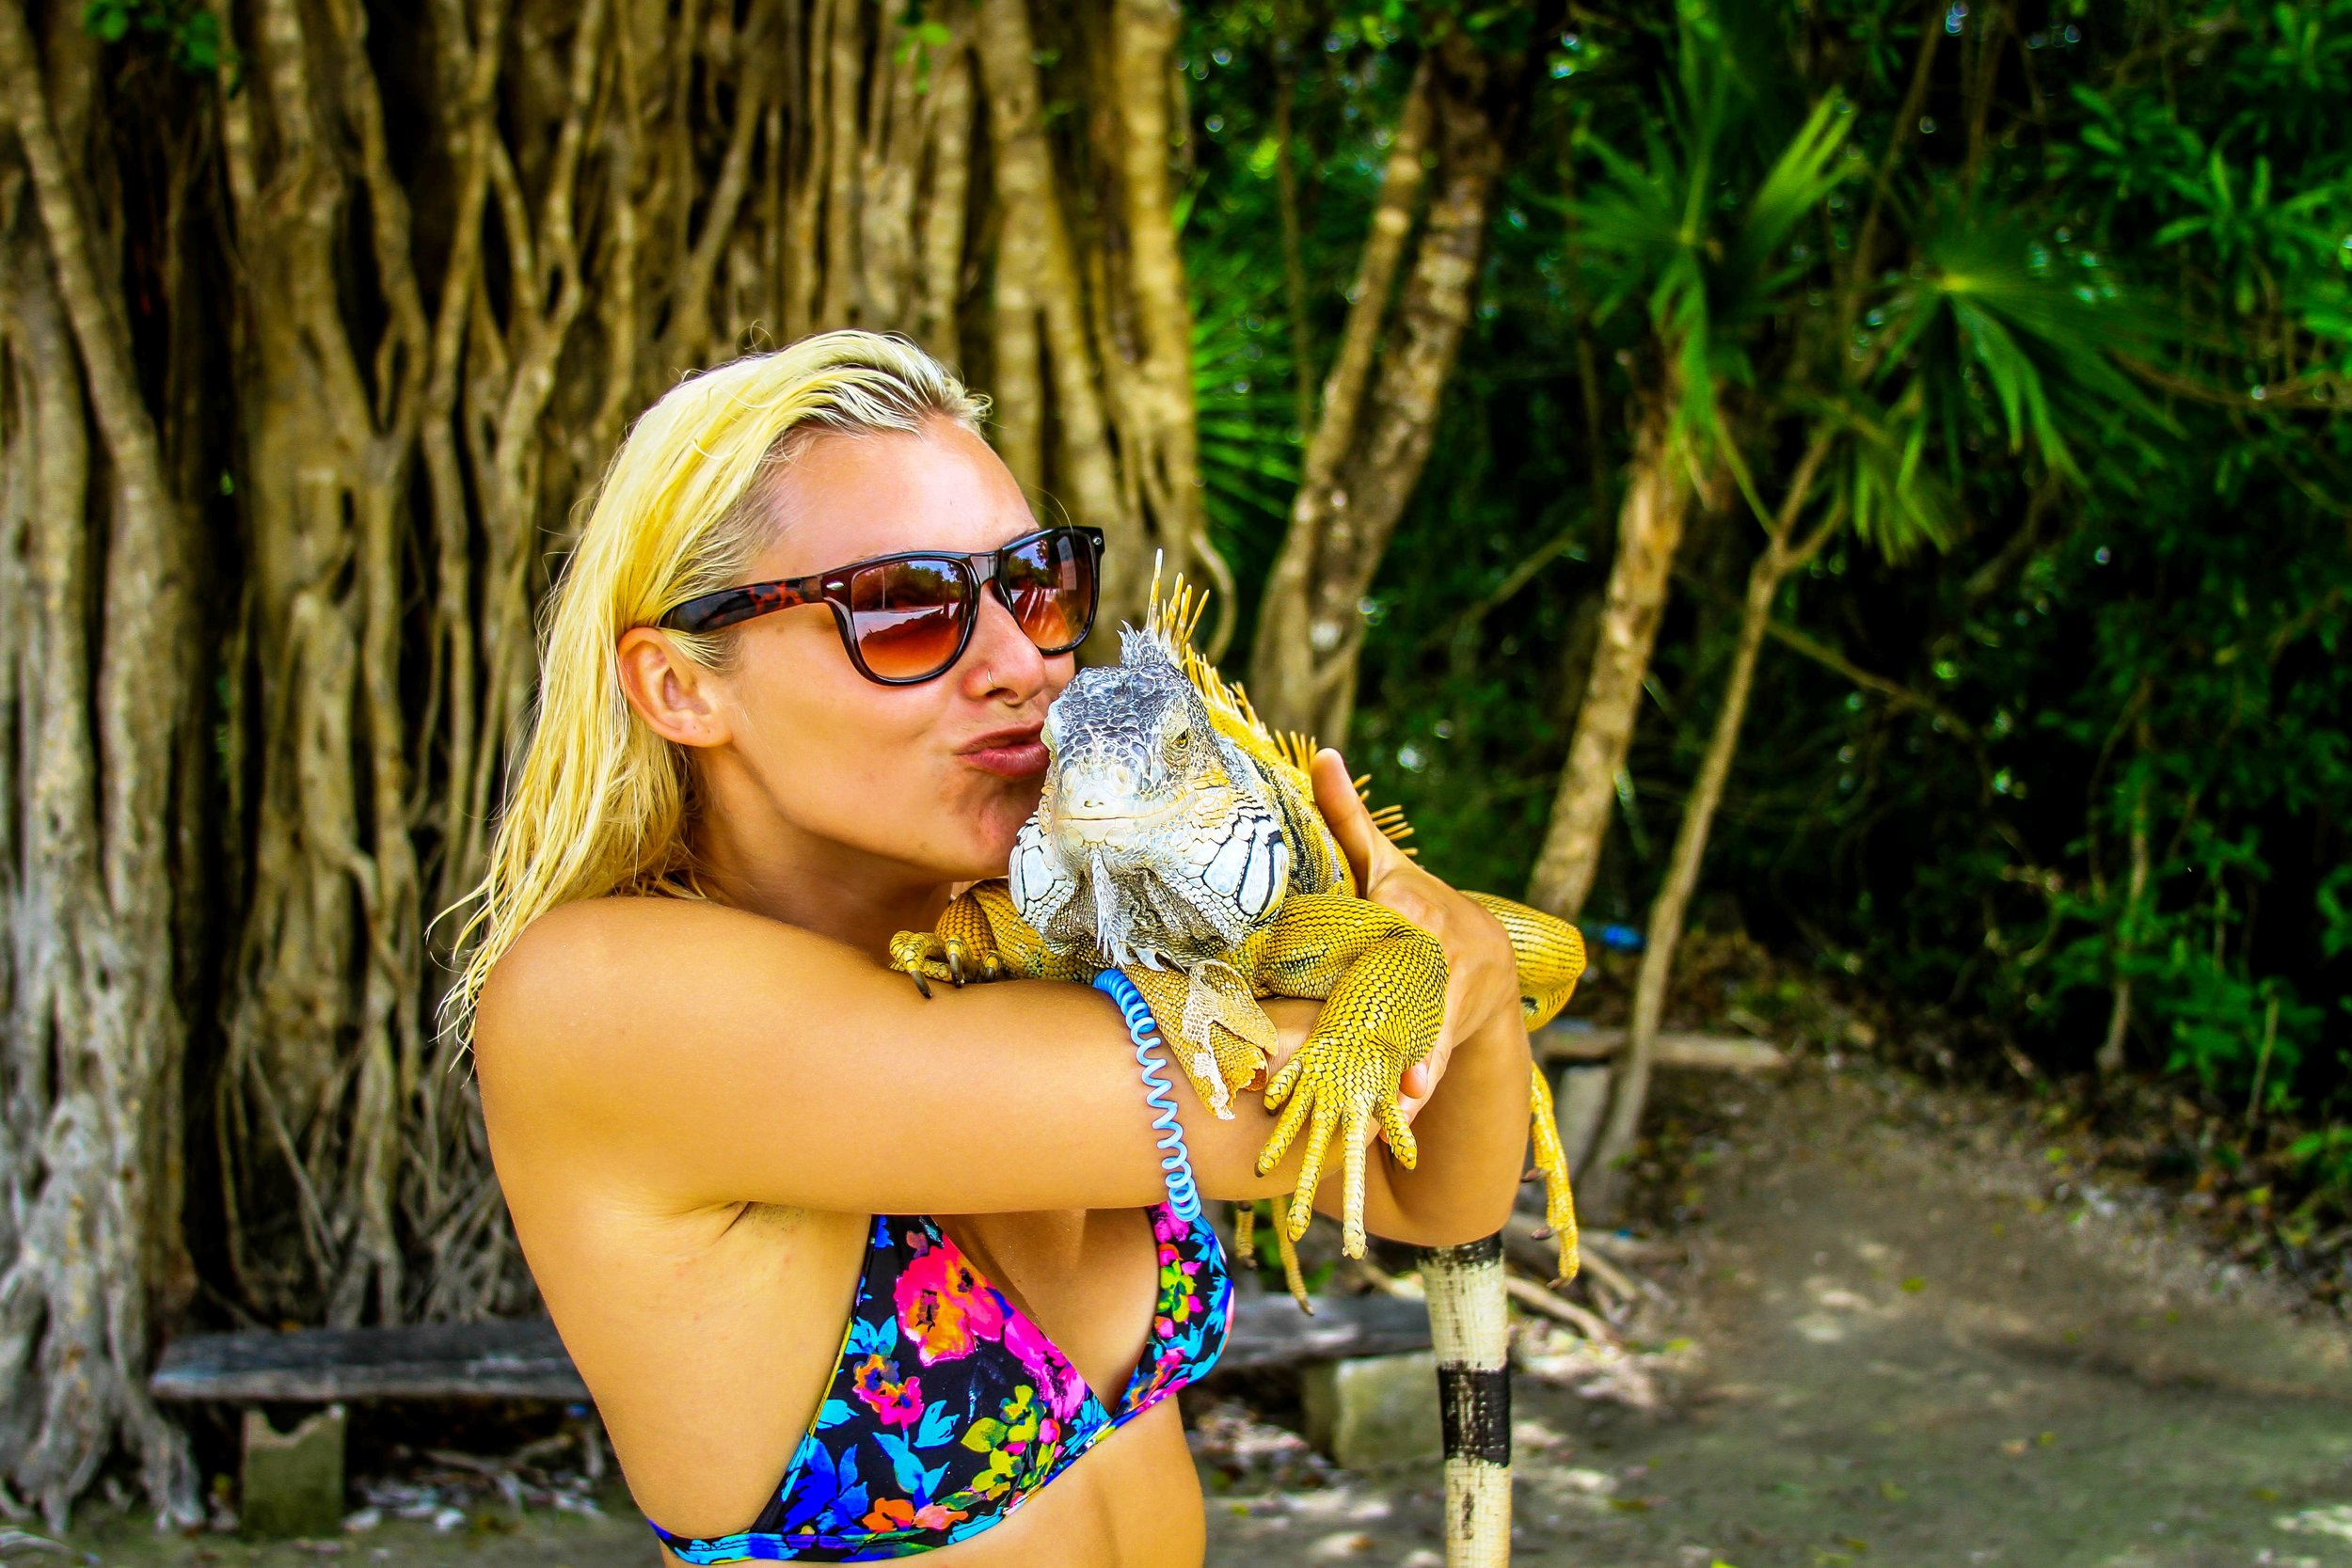 Tulum is one of the most ecologically diverse areas in the Yucatan Peninsula. Enlighten your spirit and embrace the magic of the local culture. Maybe even kiss an iguana.